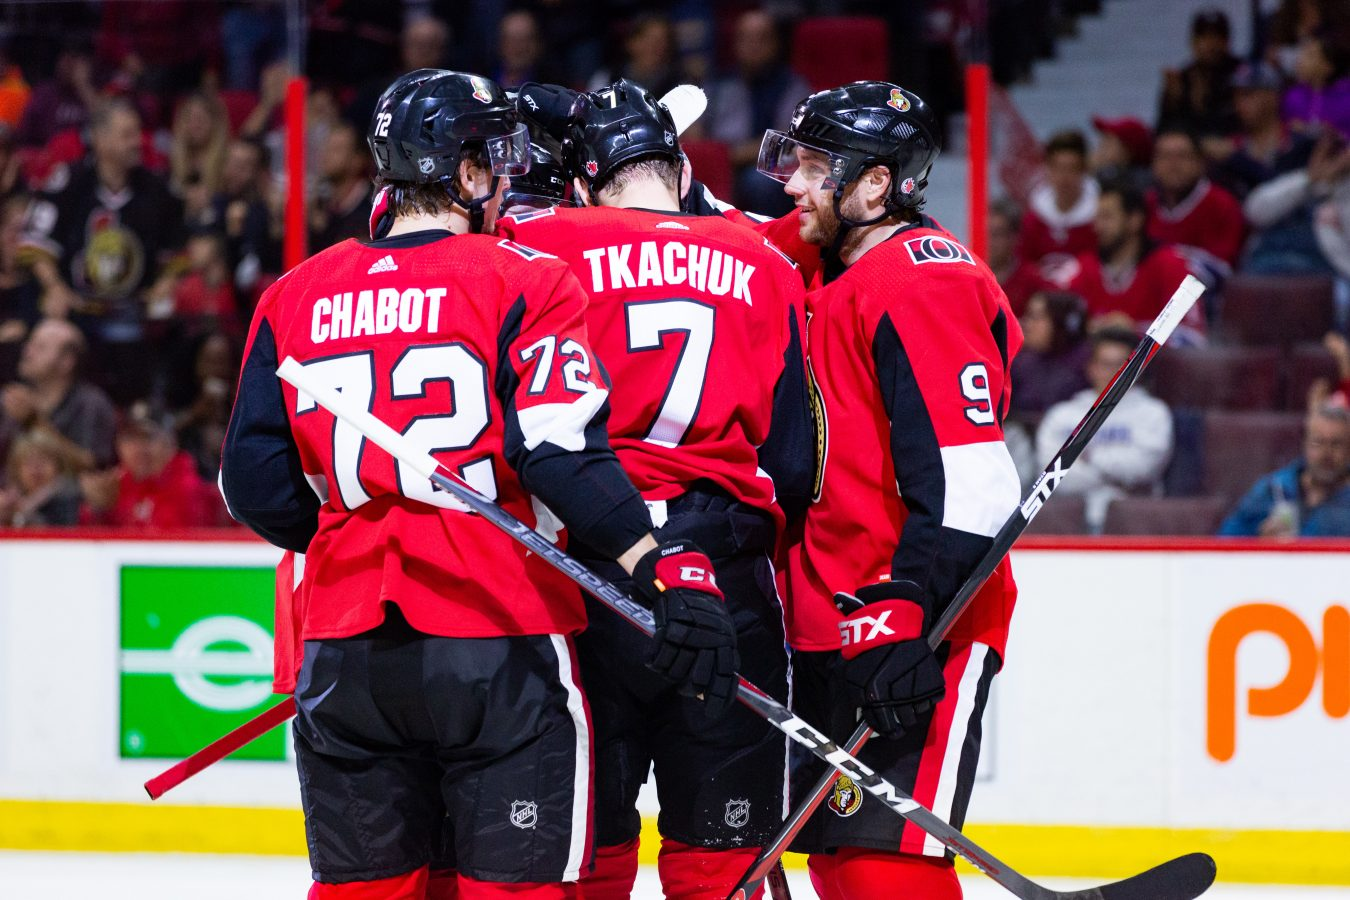 4ab19c64e89 ... grudge: the Ottawa Senators. Not that their current set is particularly  stellar, anyways, as collection worthy (although the NHL 100 Classic jersey  worn ...